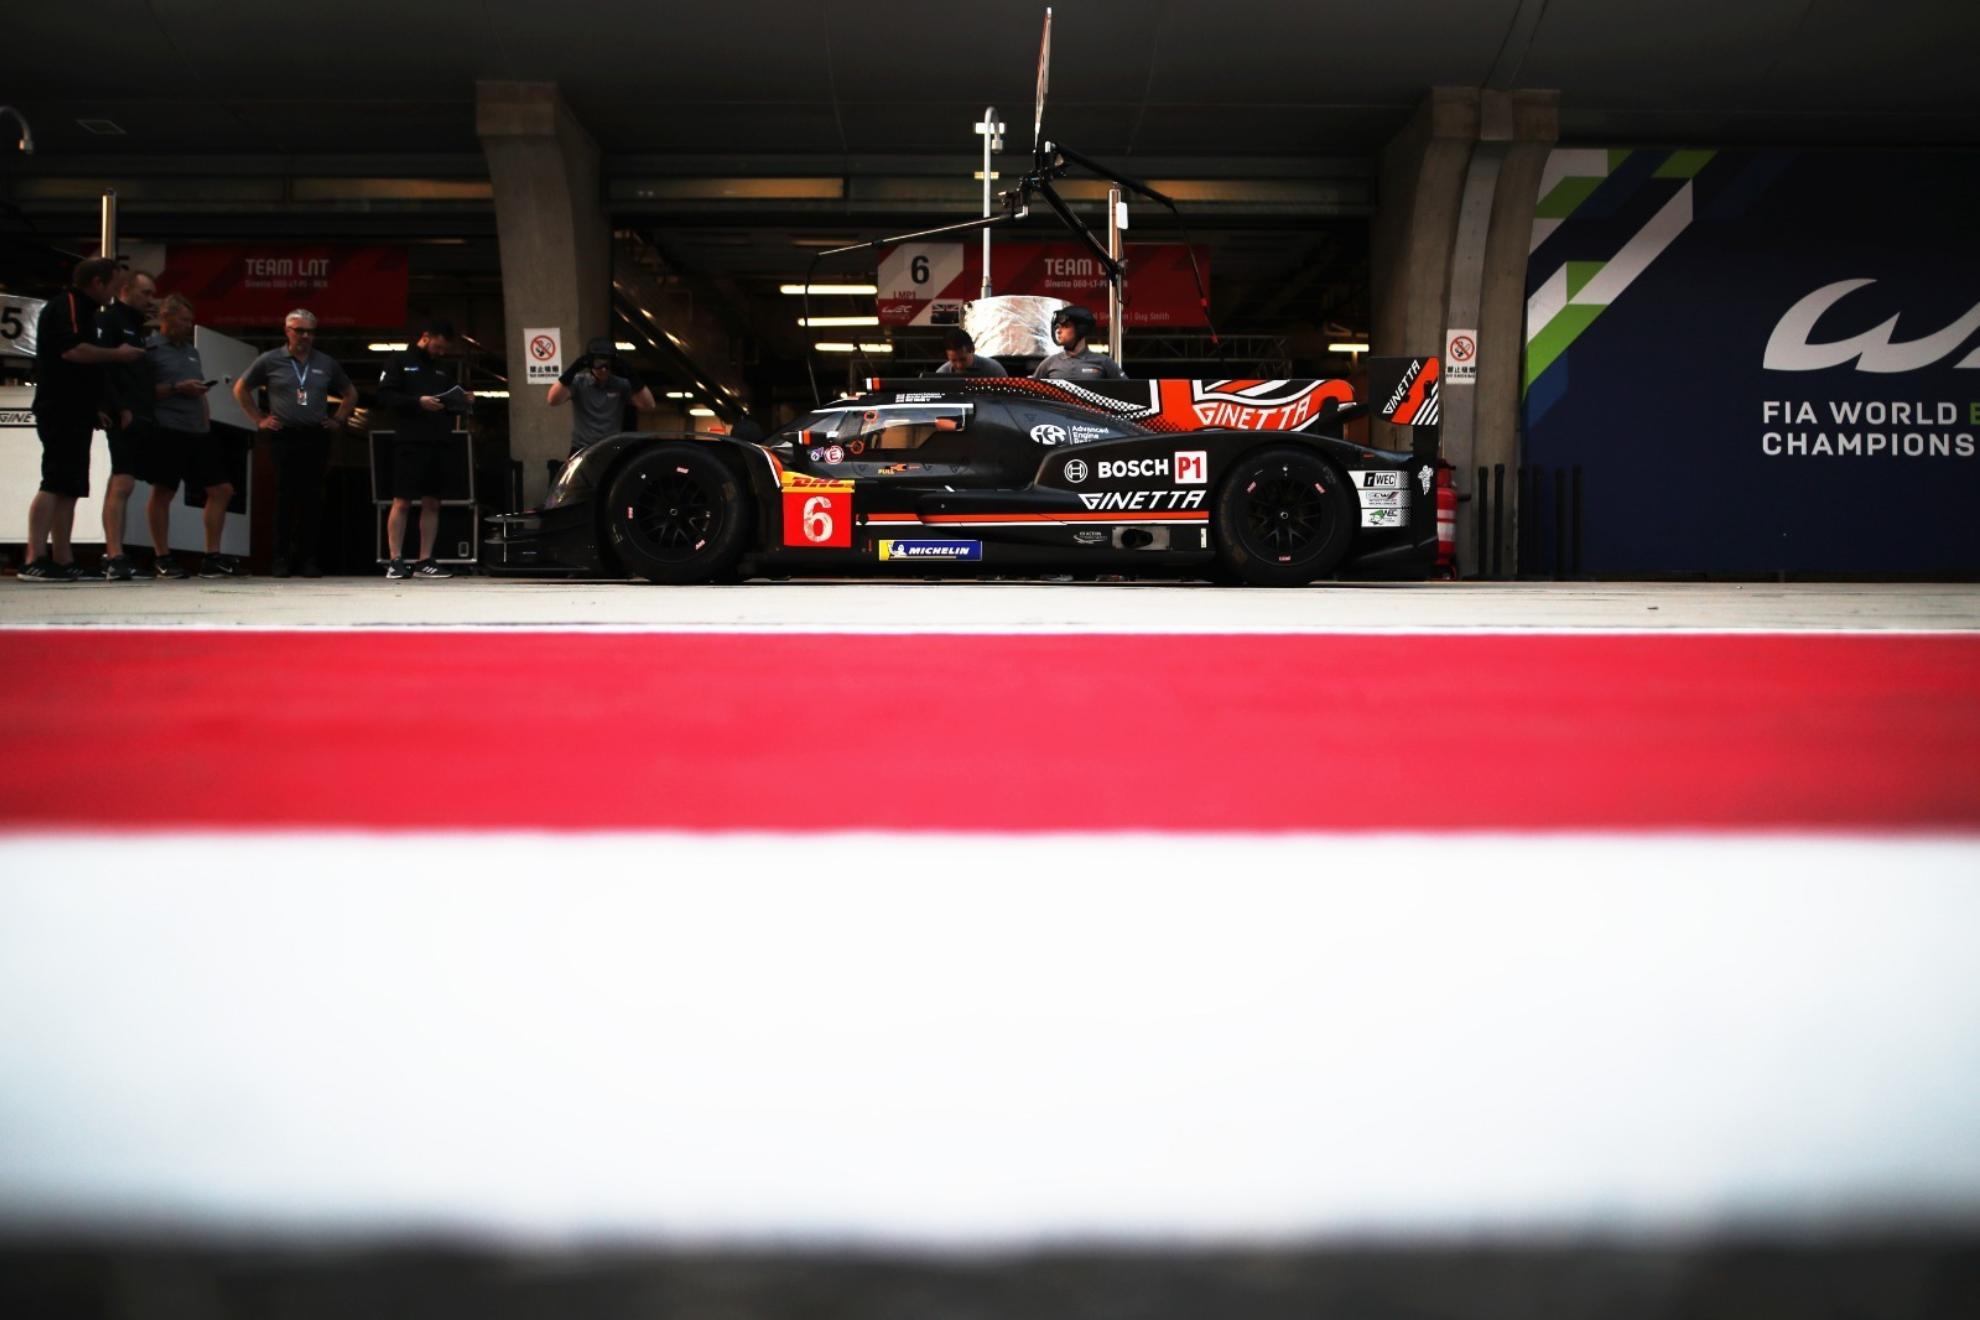 What Next For Ginetta's World Championship LMP1 Challenge? WEC Moves on to Night Race In Bahrain